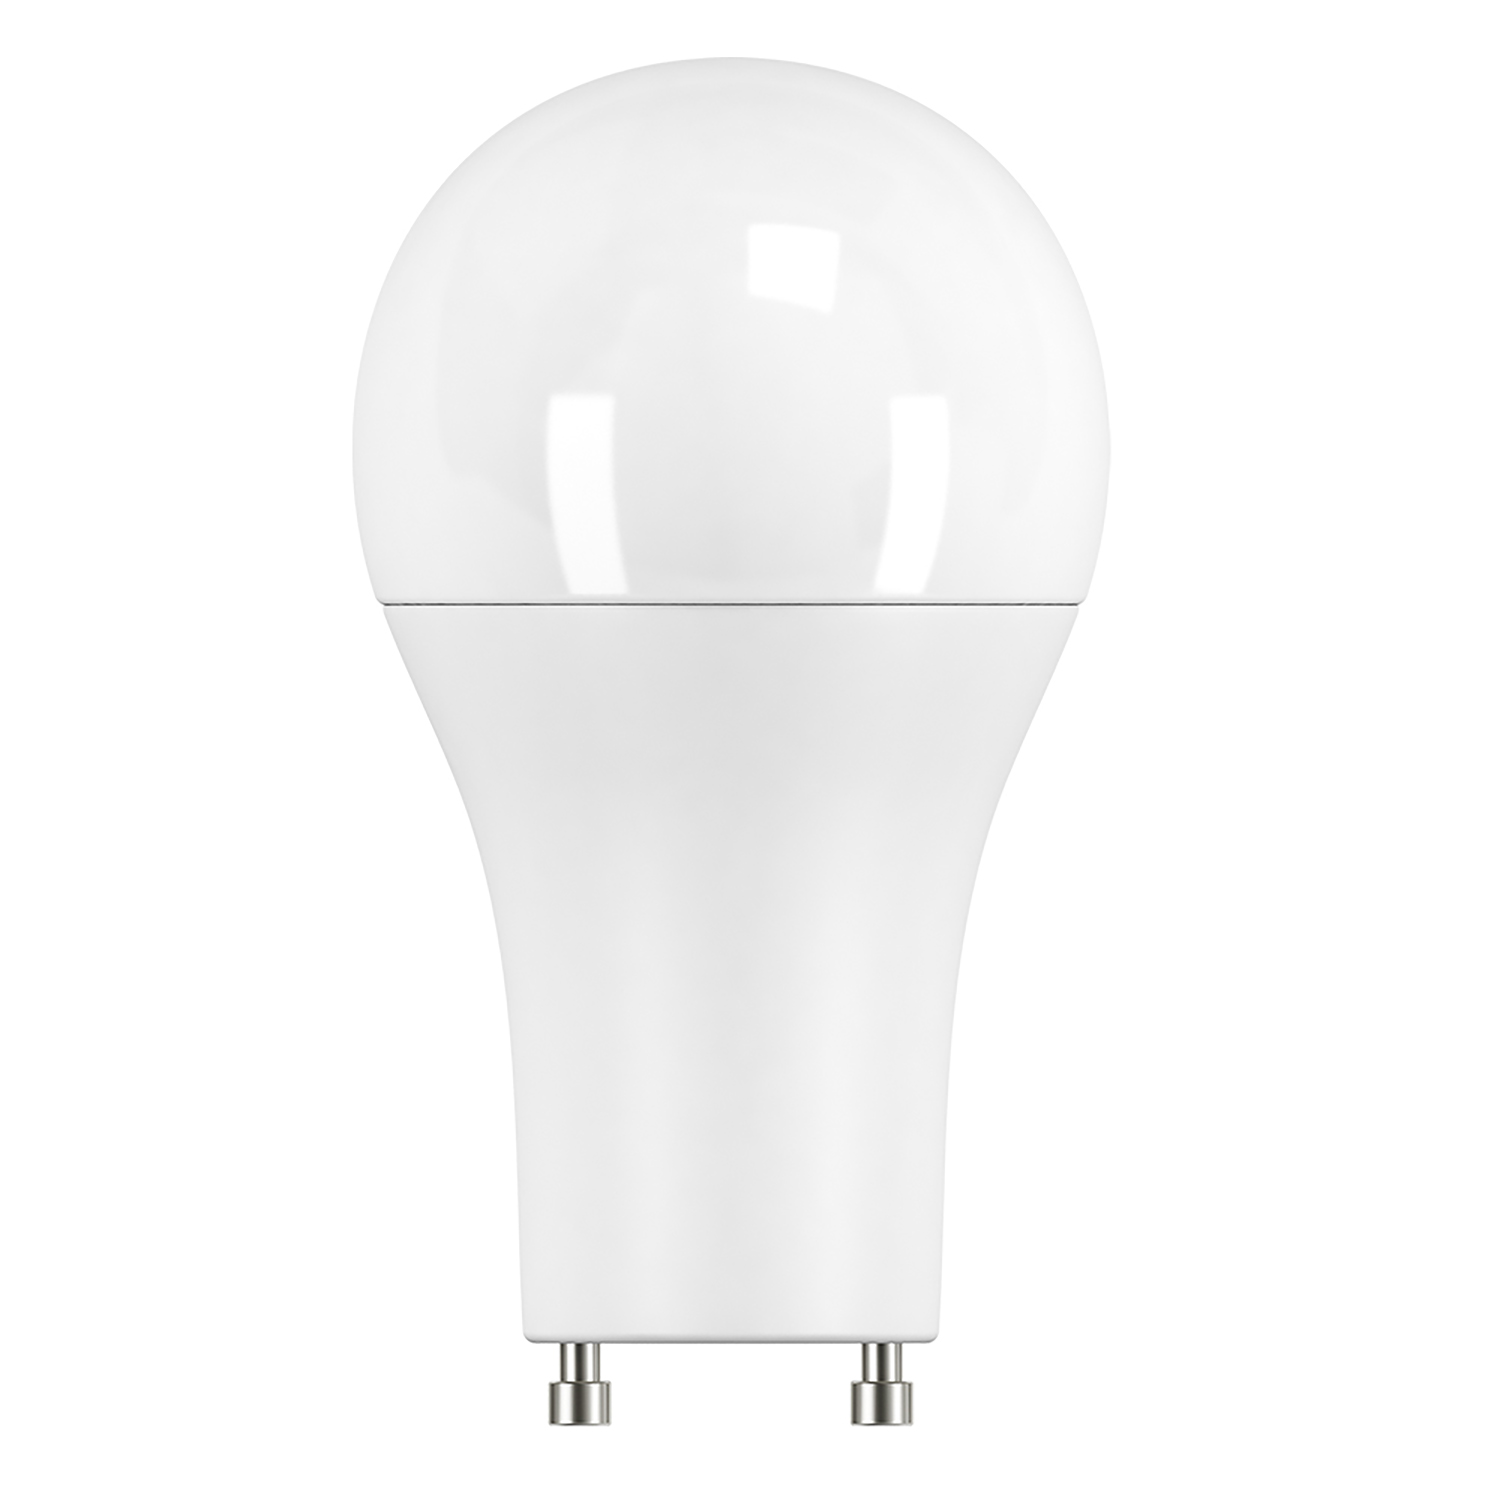 A19FR11/827/OMNI2/GU24/LED 83184 LED A19 11.5W 2700K GU24 NON-DIMMABLE OMNIDIRECTIONAL ProLED